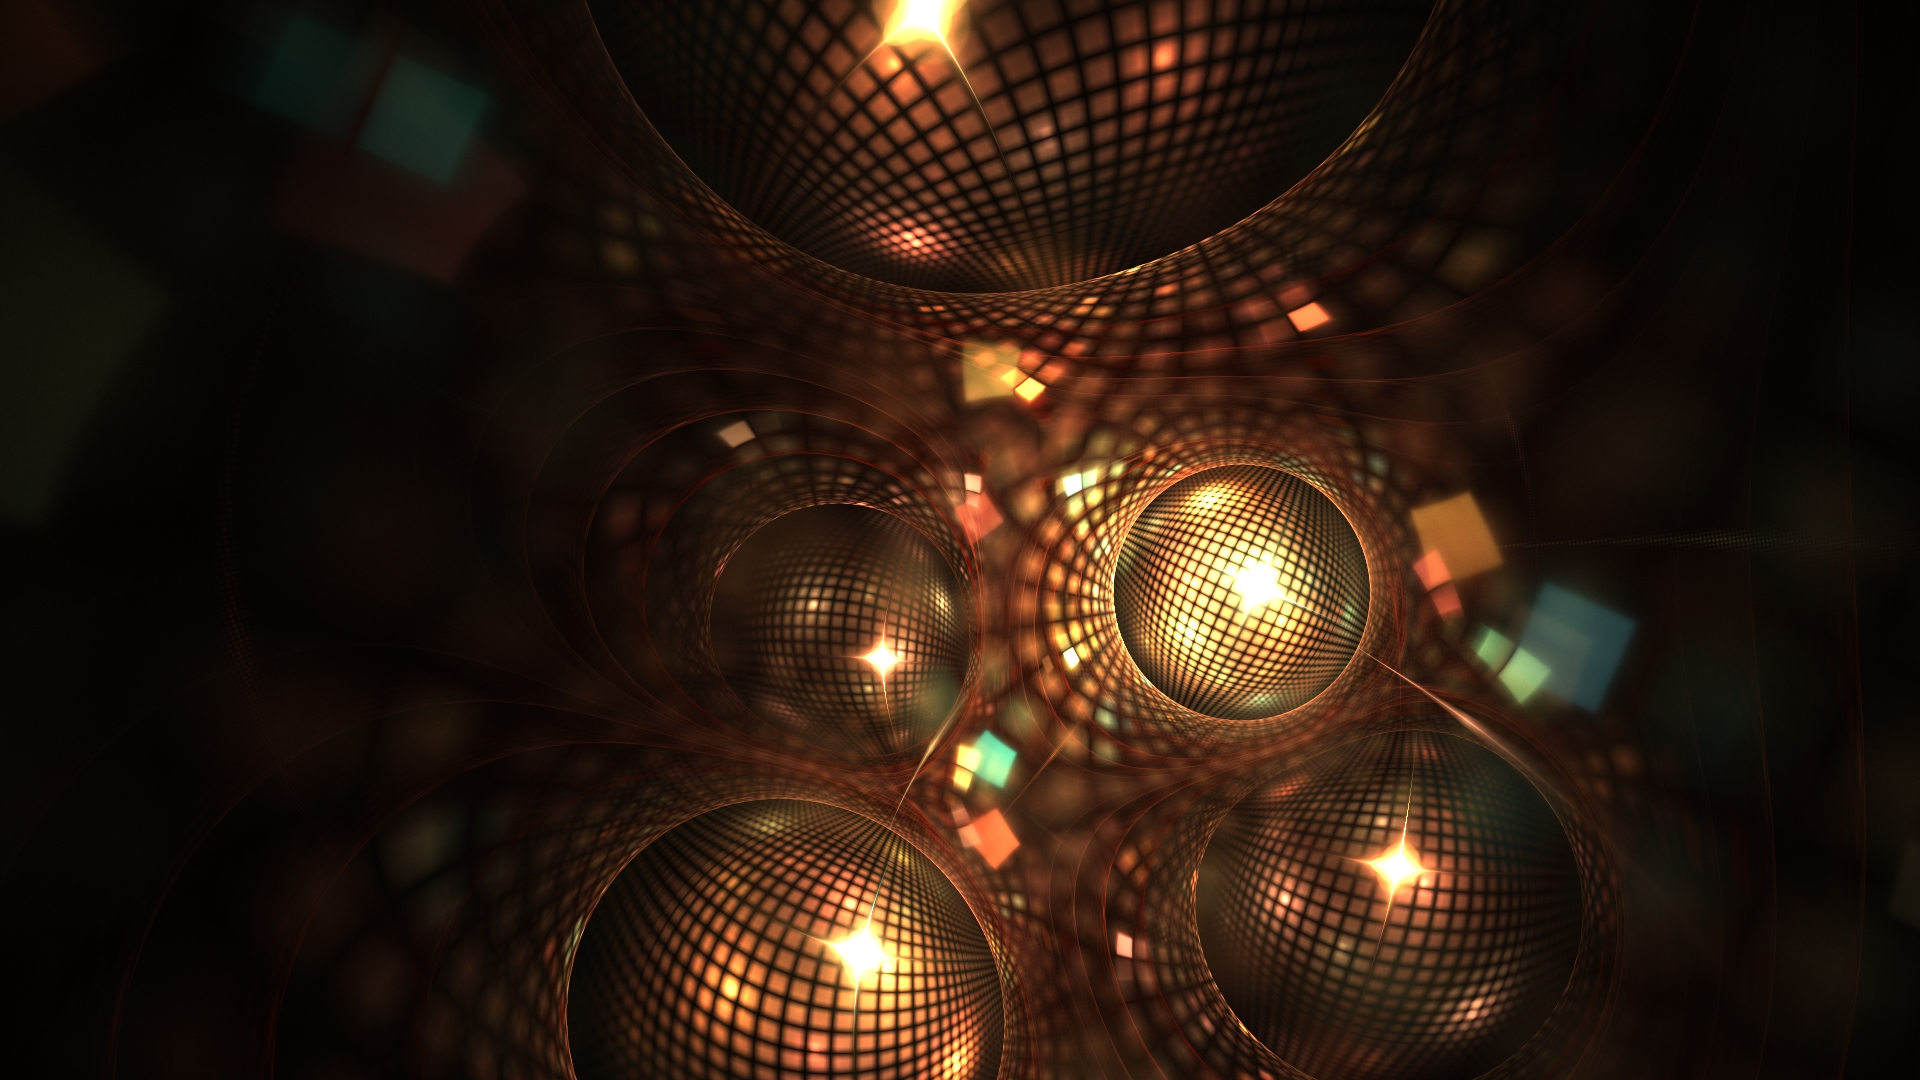 alphacoders com disco ball computer wallpapers desktop backgrounds 1920x1080